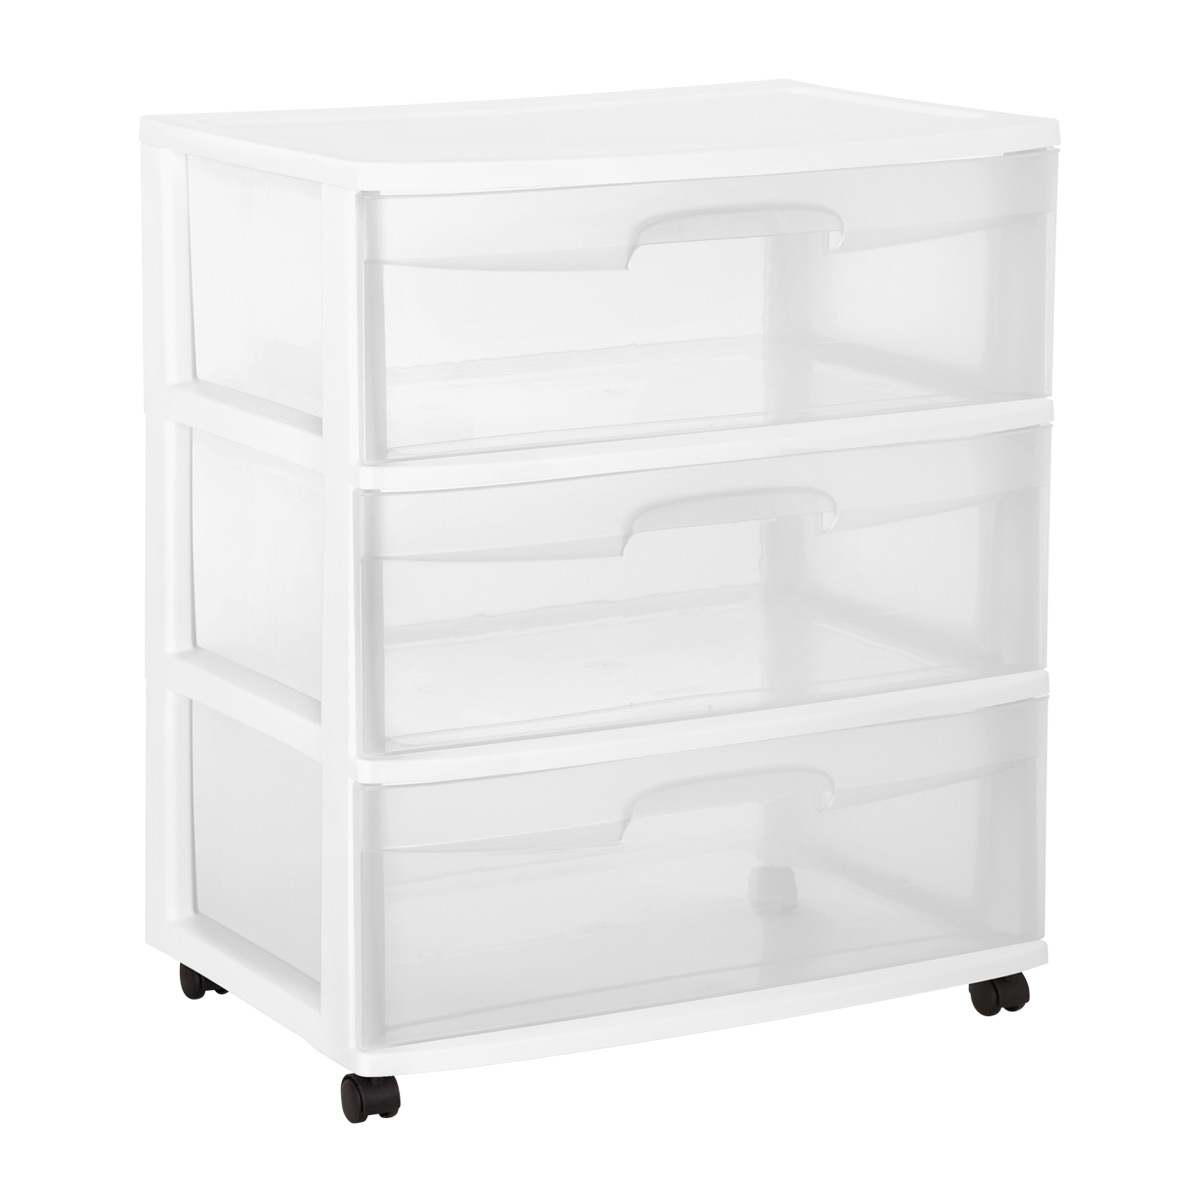 Sterilite Wide 3-Drawer Chest with Wheels